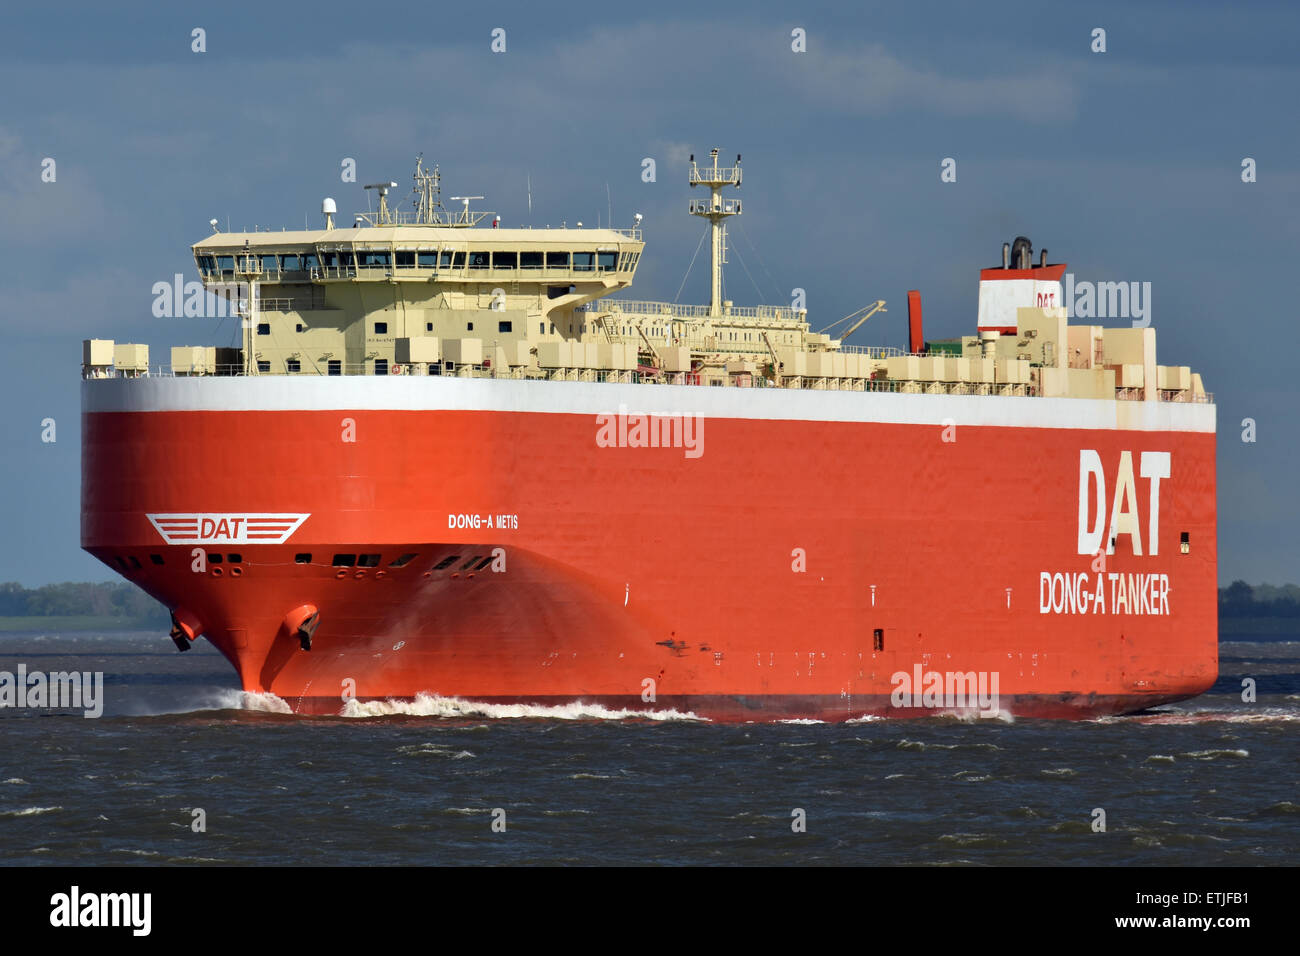 CarCarrier Dong-A Metis off Cuxhaven - Stock Image